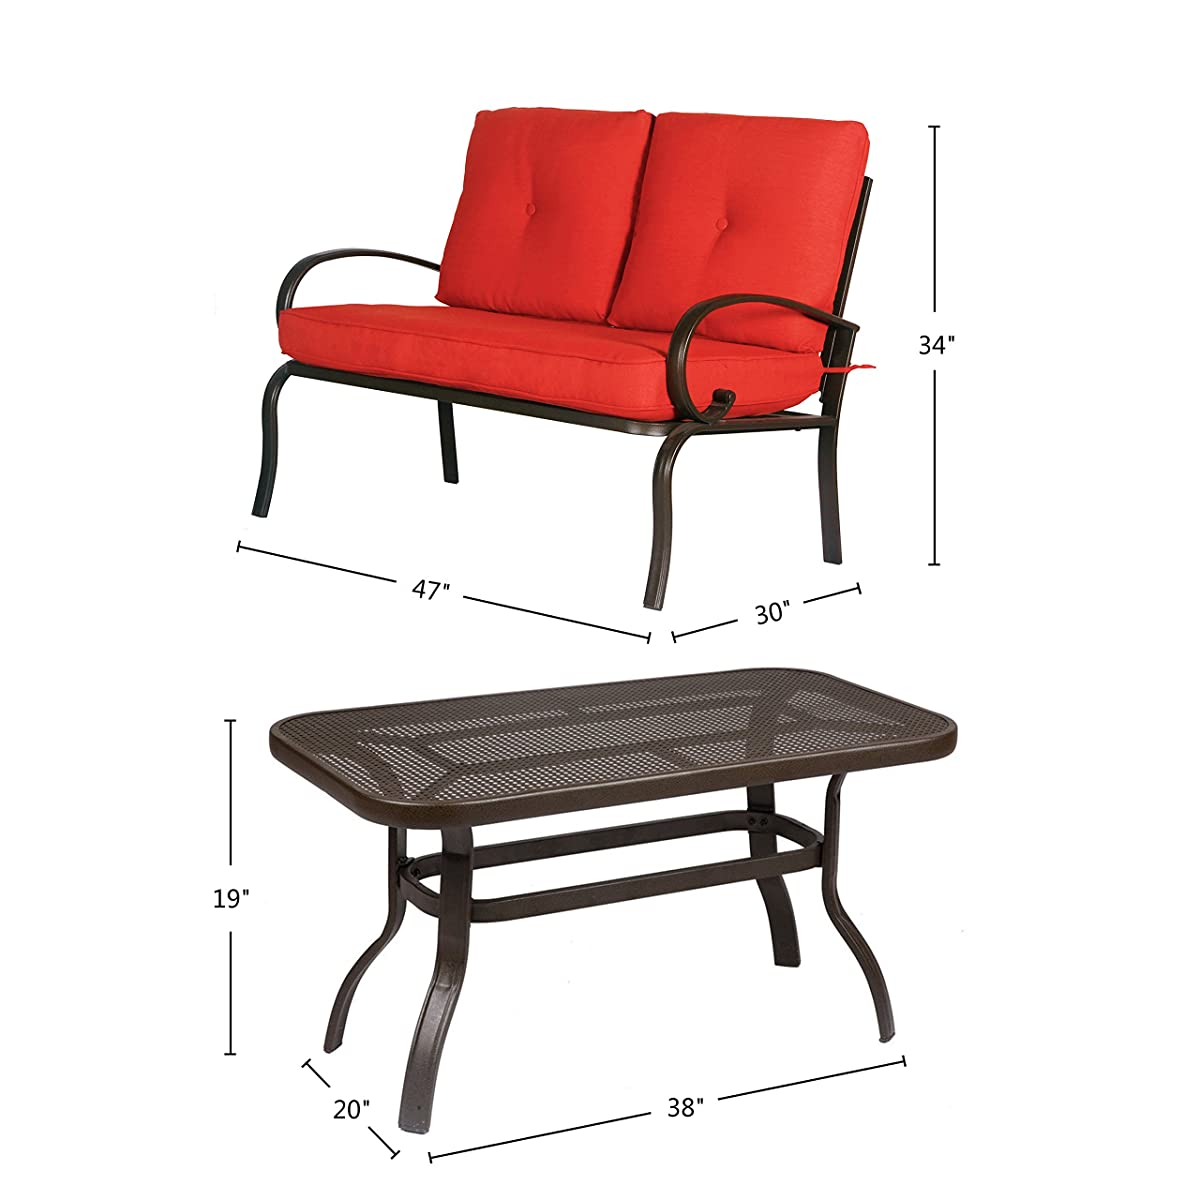 Cloud Mountain 5 Piece Cushioned Outdoor Furniture Garden Patio Conversation Set, Wrought Iron Coffee Table Loveseat Sofa 2 Chairs (Patio Conversation Set 2, Brick Red)